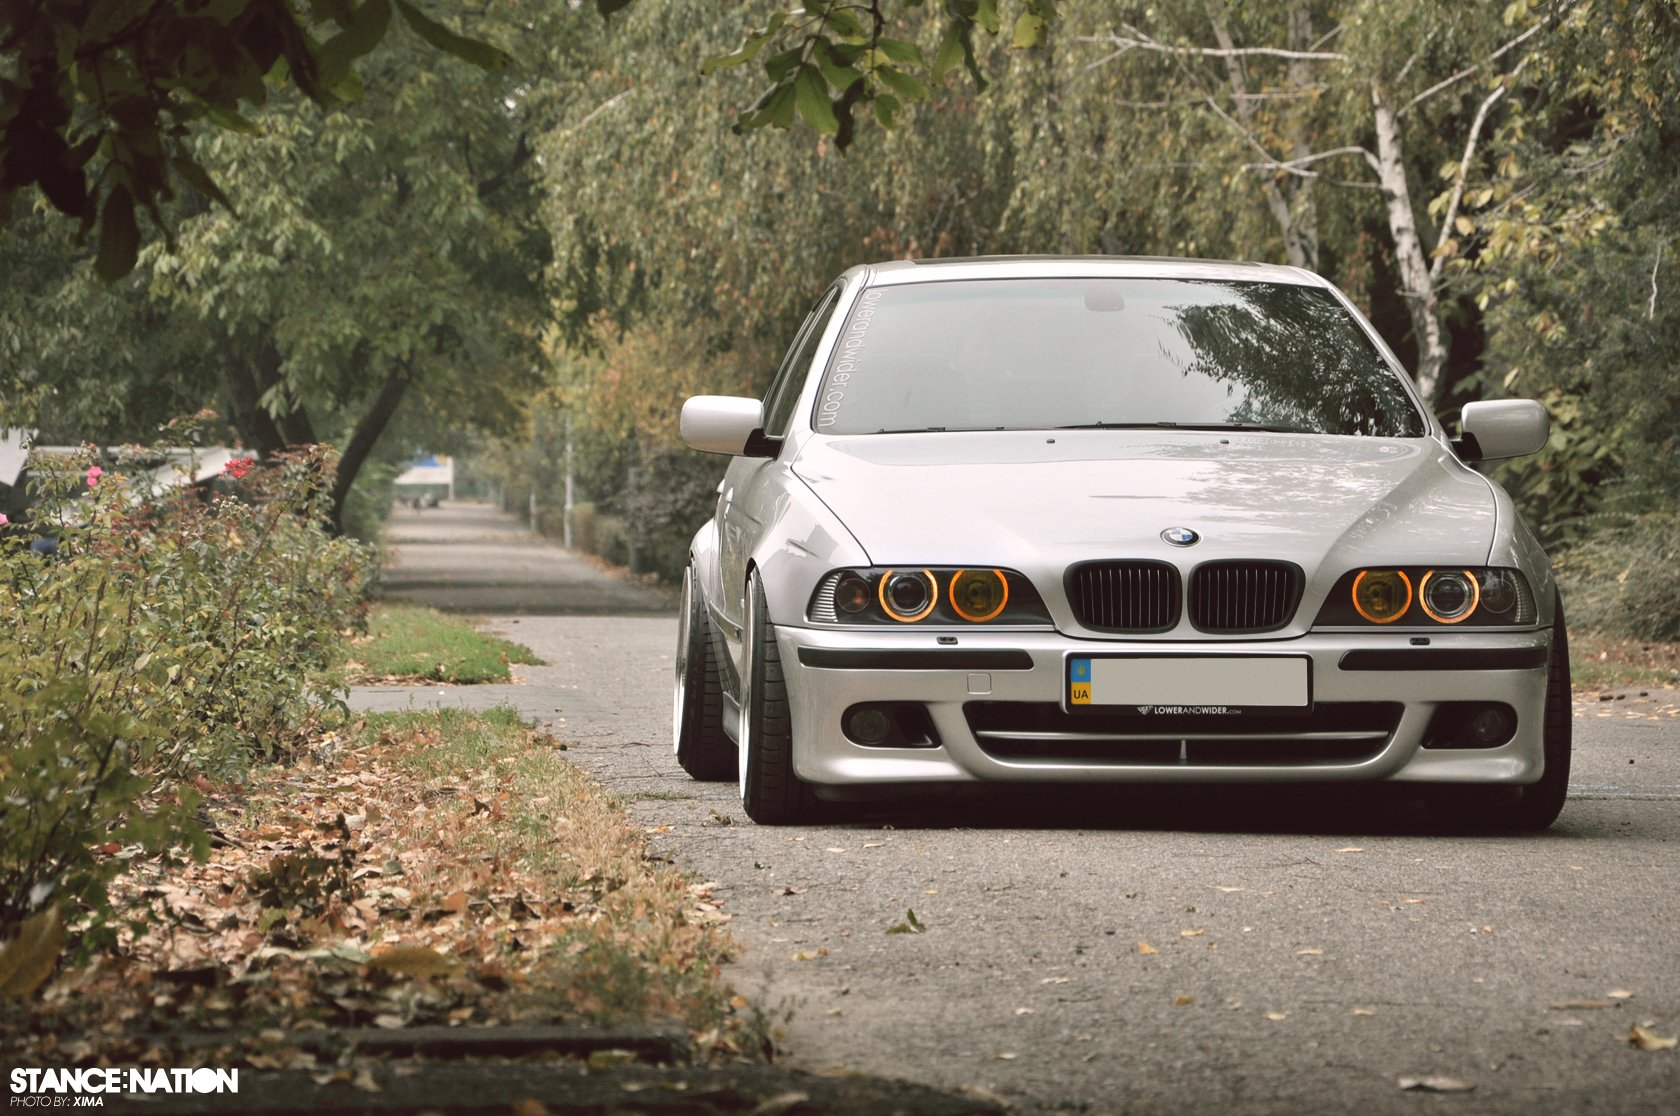 Bmw E39 M 5 Custom Tuning Wallpaper 1680x1116 845765